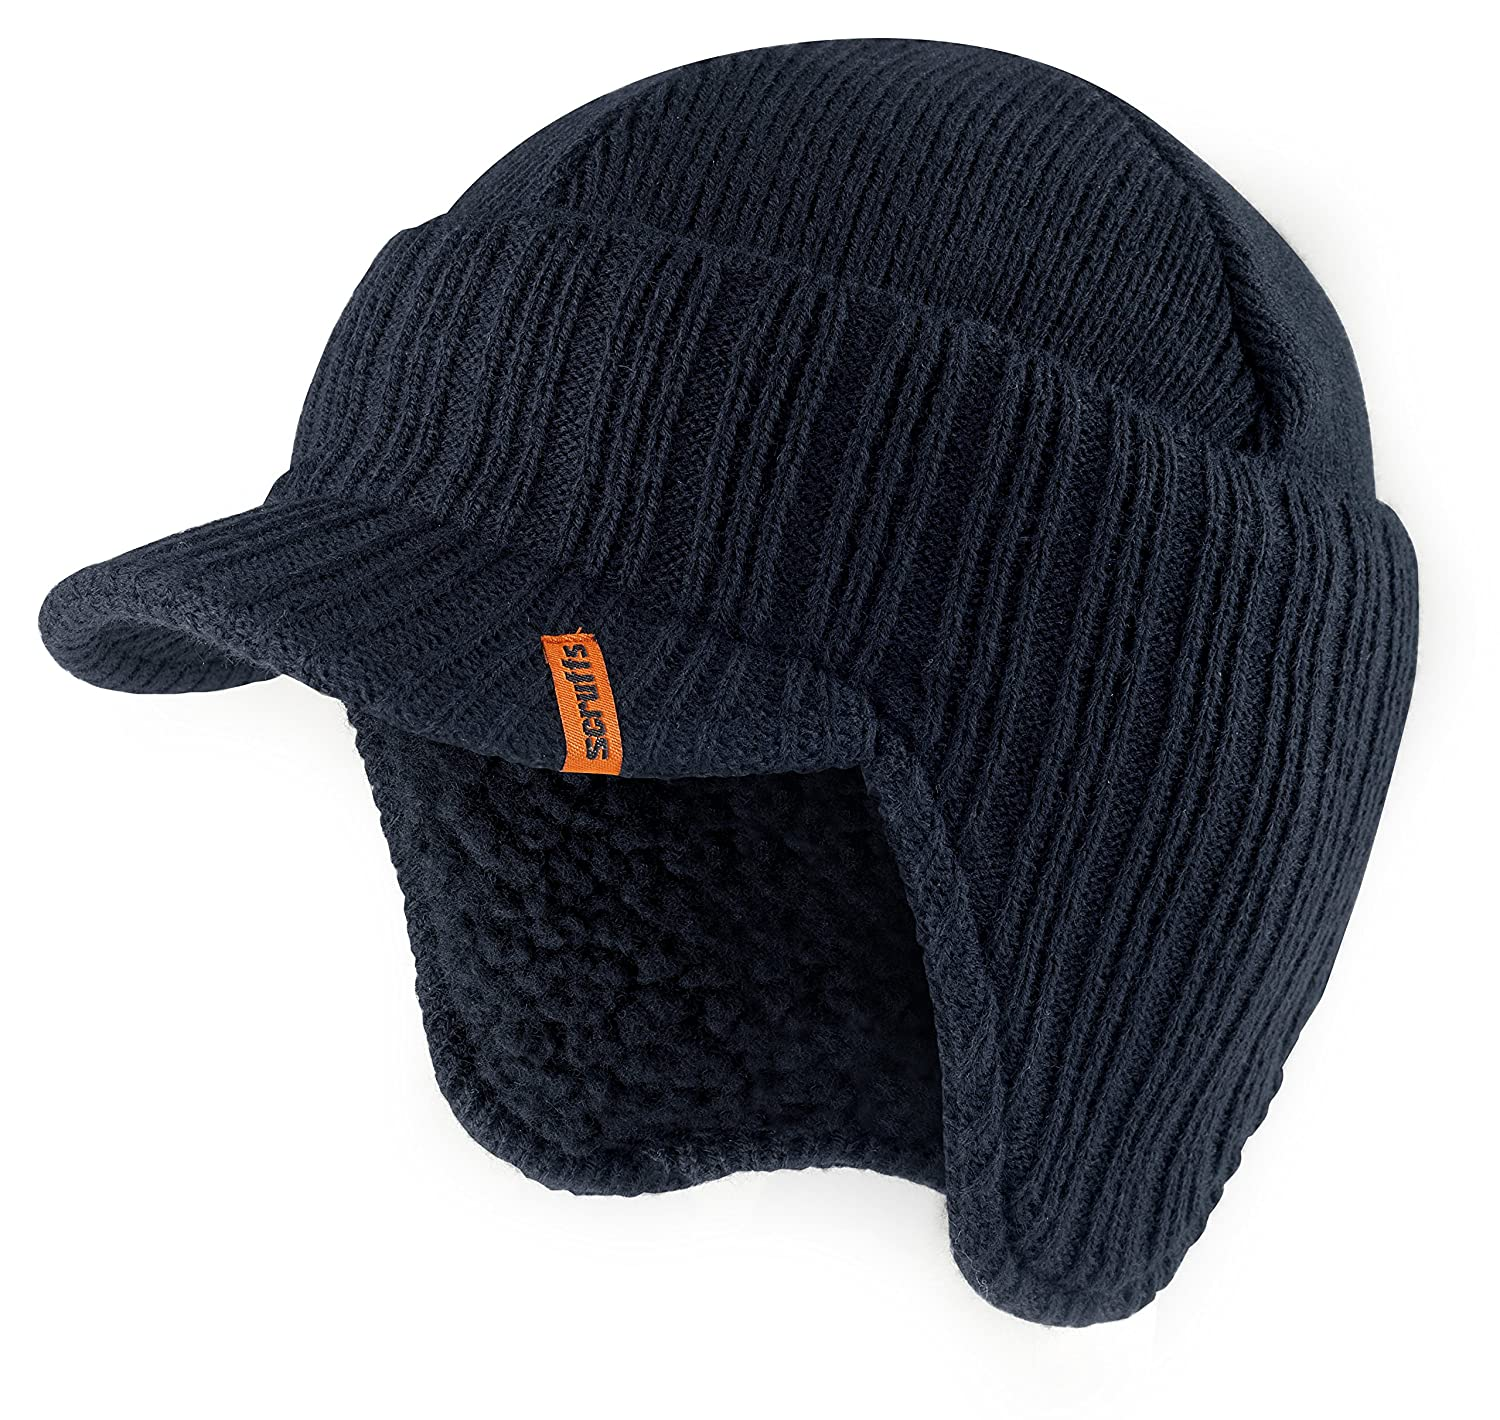 Scruffs Peaked Beanie Hat Navy Insulated Warm Knitted Thermal Winter  Stylish Peak Cap  Amazon.co.uk  Clothing 3e30d09645f